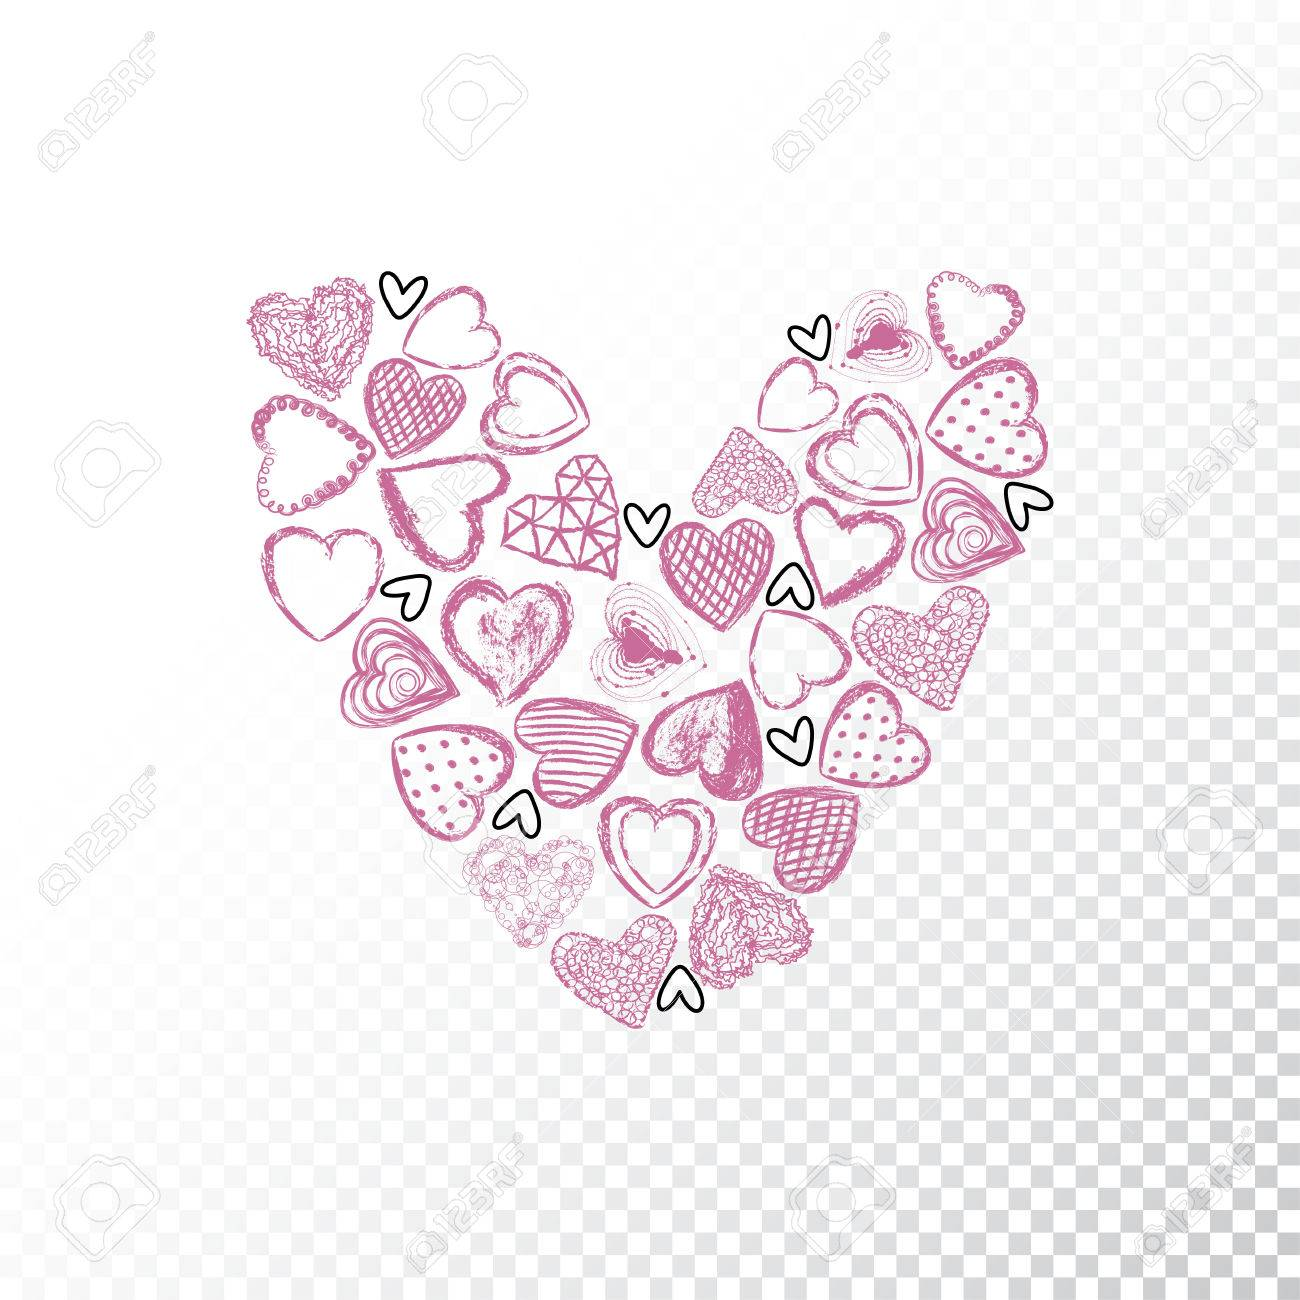 Vector Valentines Day Heart Drawn From A Set Of Small Hearts